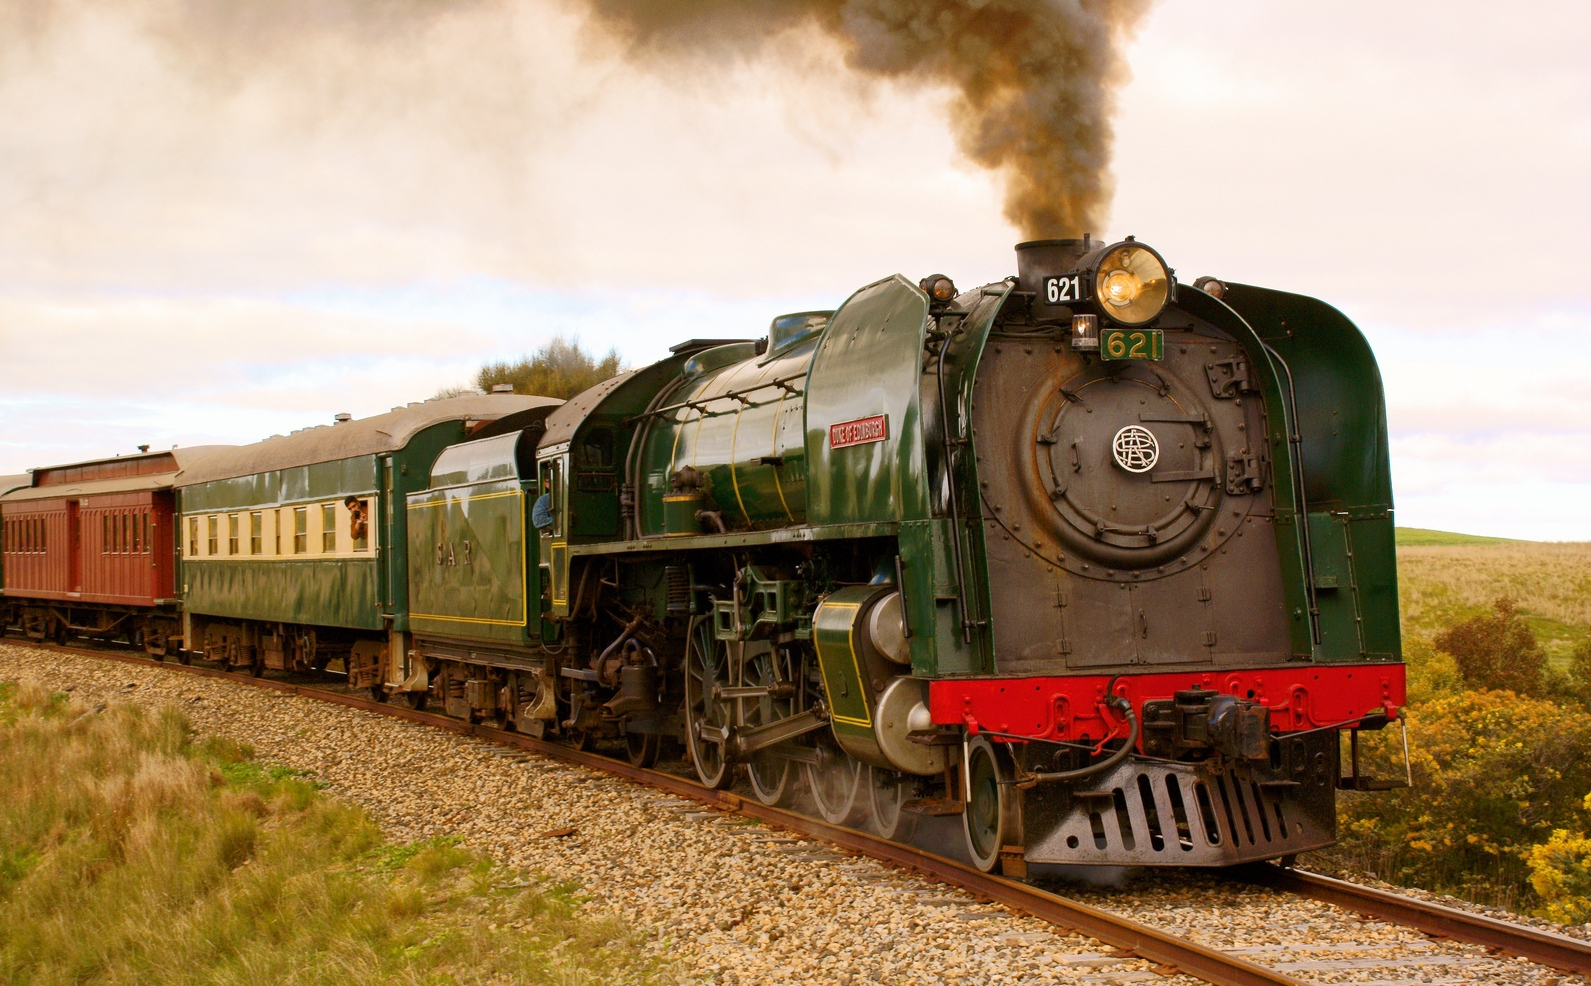 Steam train engines for sale